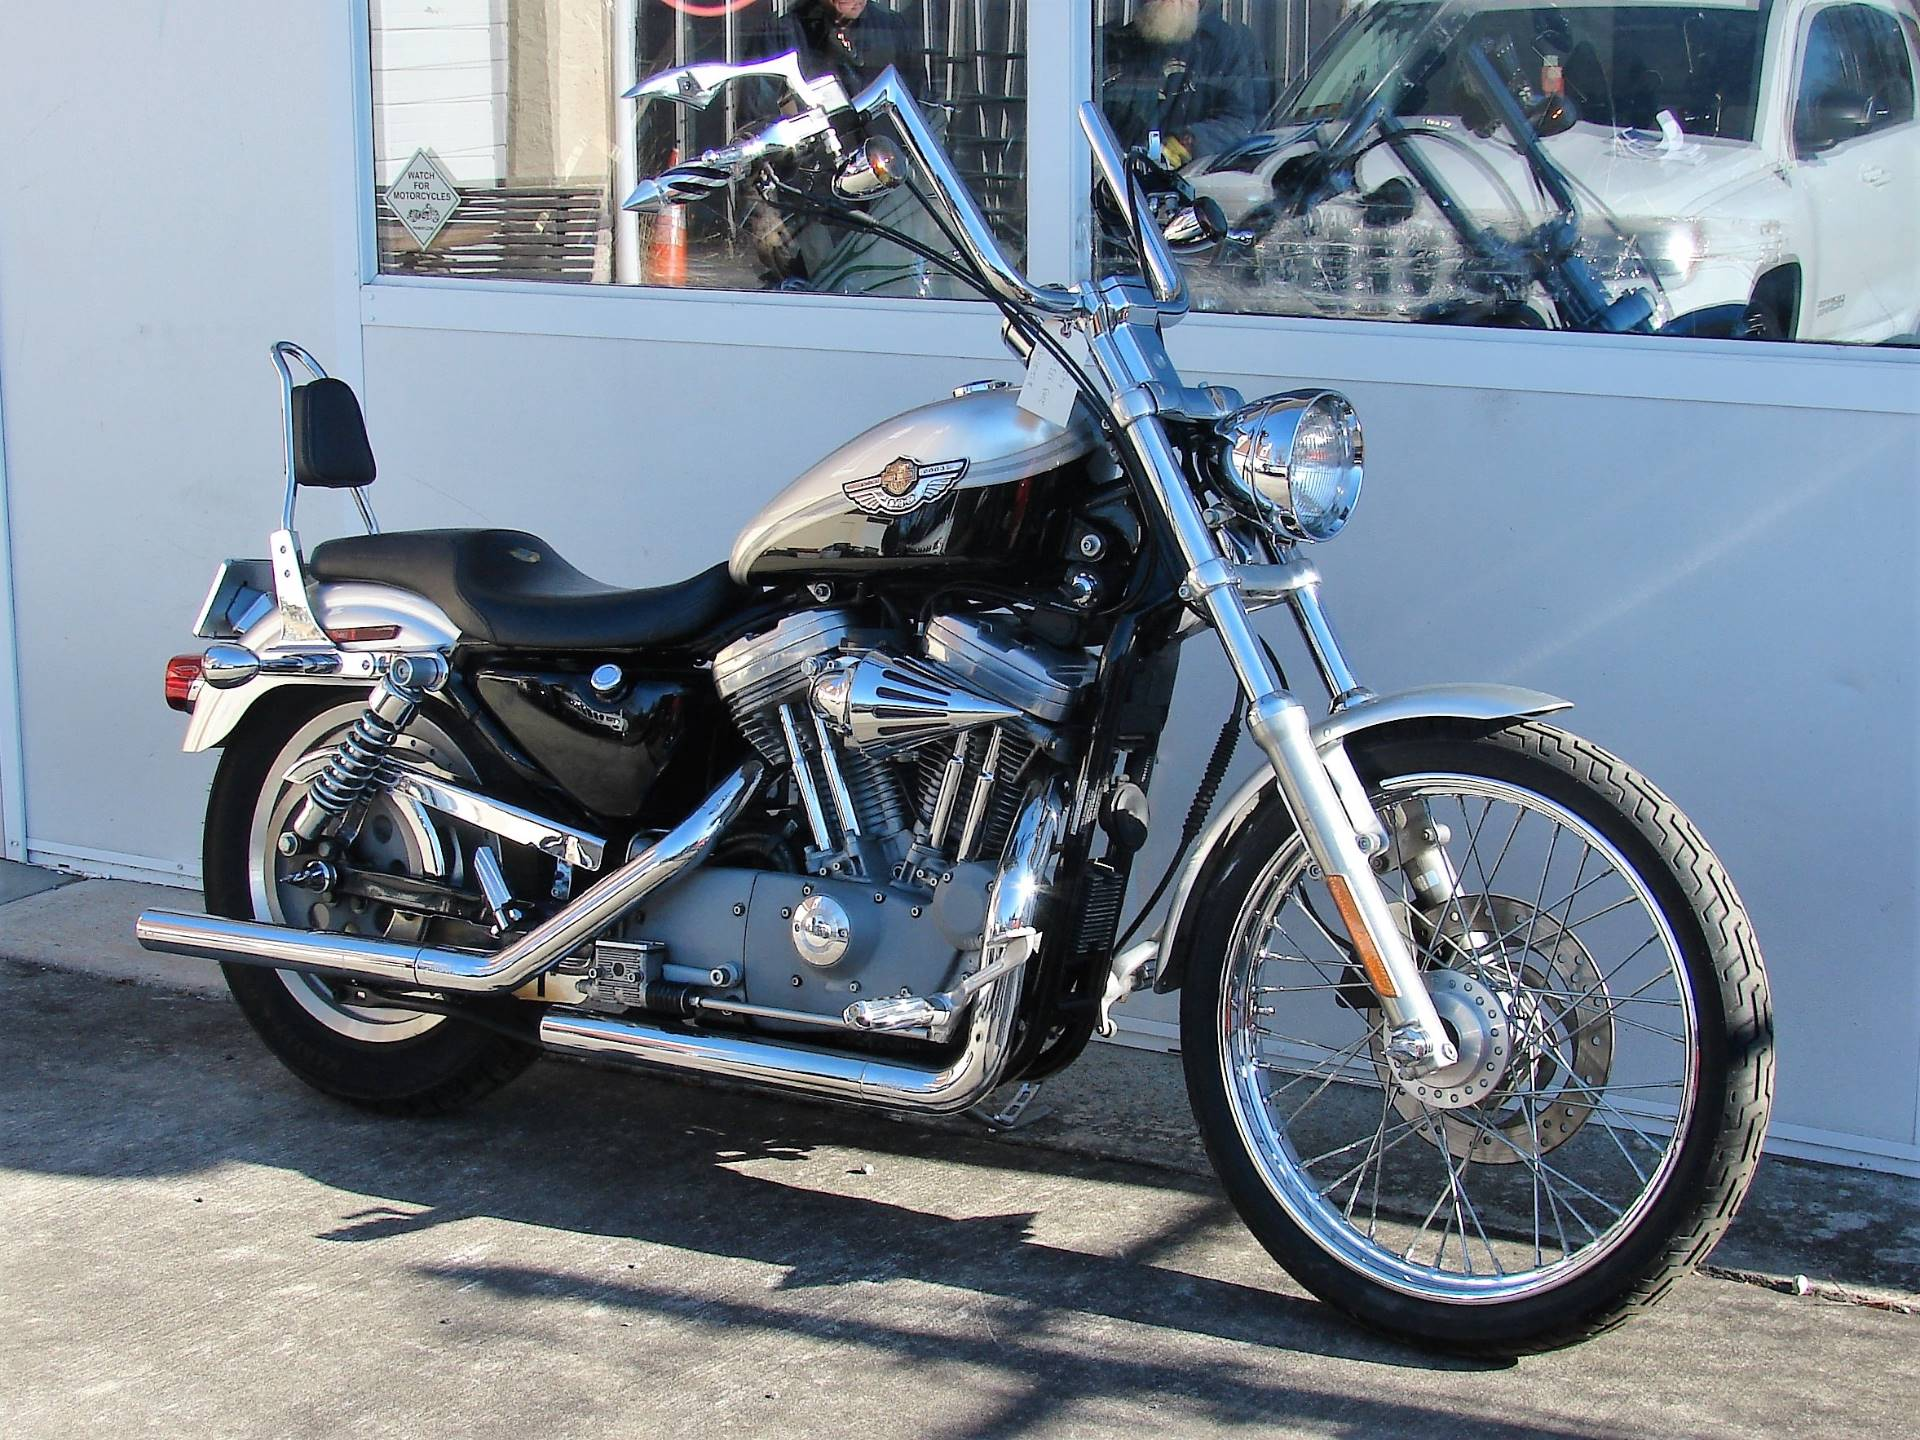 2003 Harley-Davidson XLH 883 Sportster (Anniversary Edition) (Silver & Black) in Williamstown, New Jersey - Photo 4